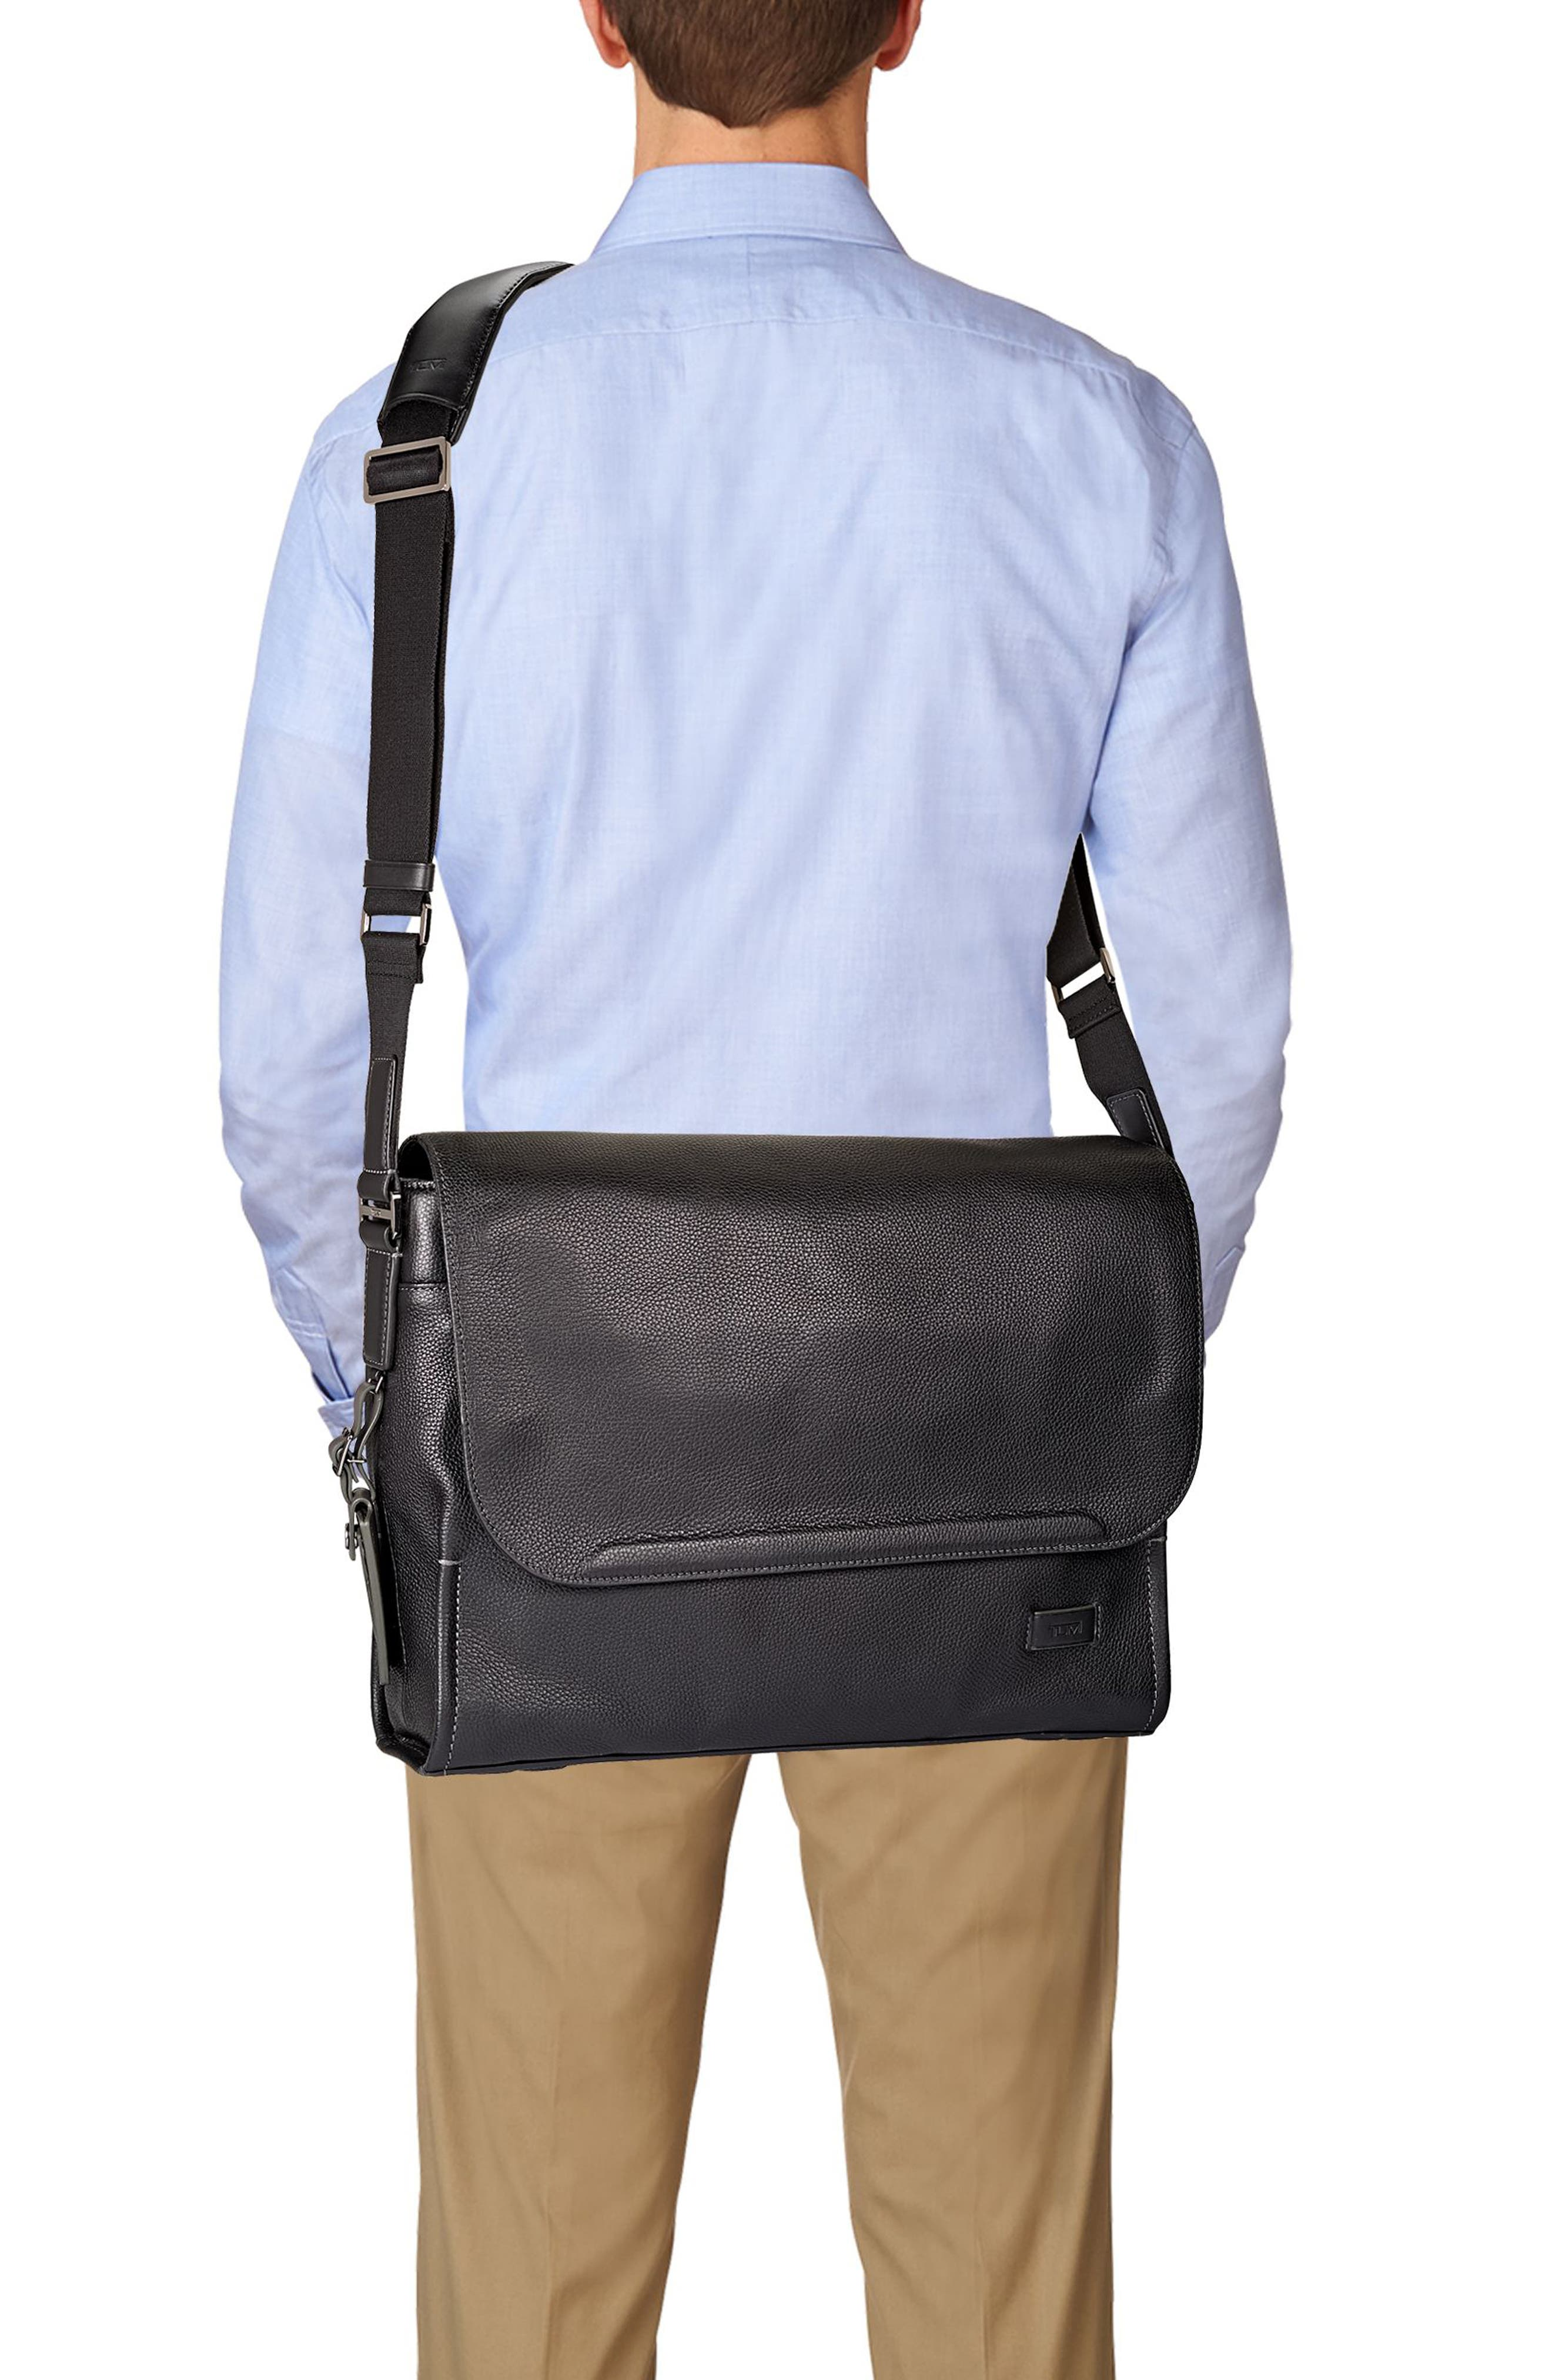 Harrison - Mathews Messenger Bag,                             Alternate thumbnail 2, color,                             Black